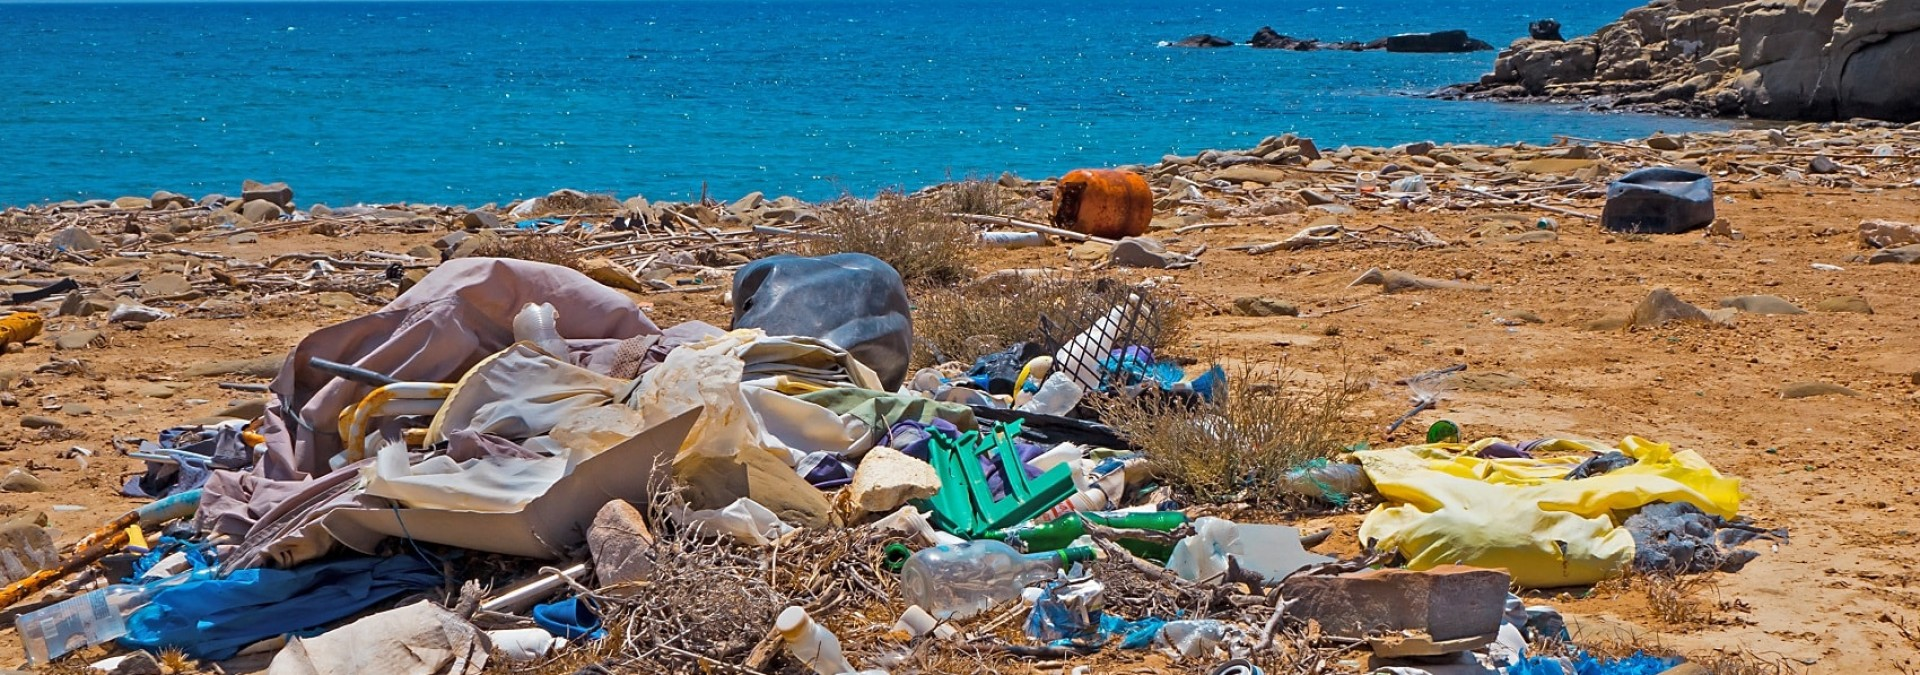 Plastic waste on Moroccan Beaches